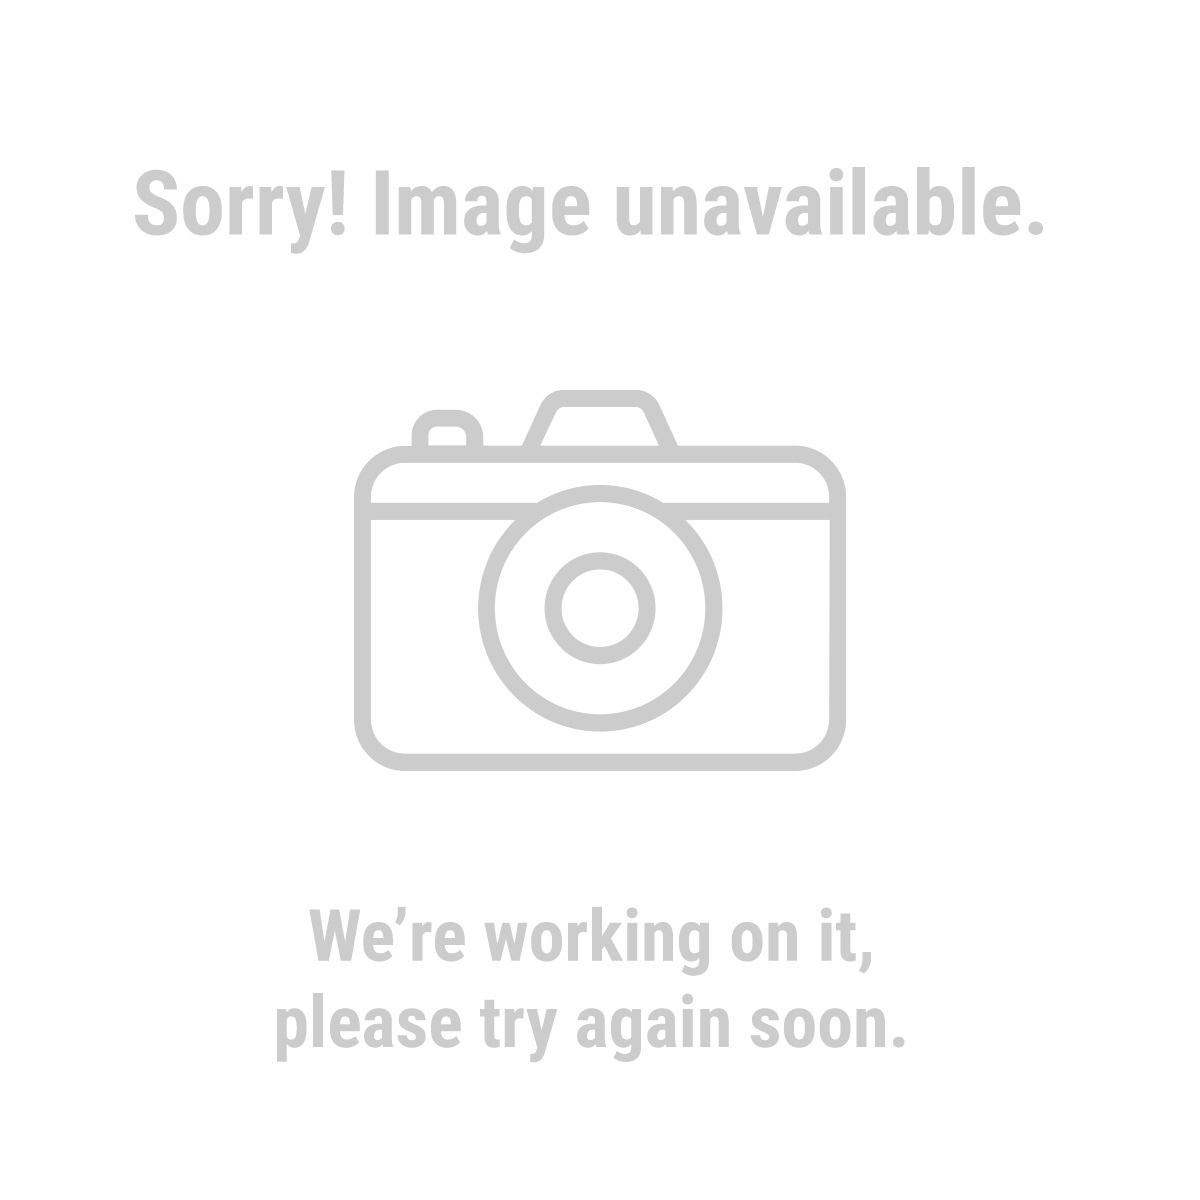 Chicago Electric Power Tools 90981 2.2 Gallon Wet/Dry Vacuum/Blower